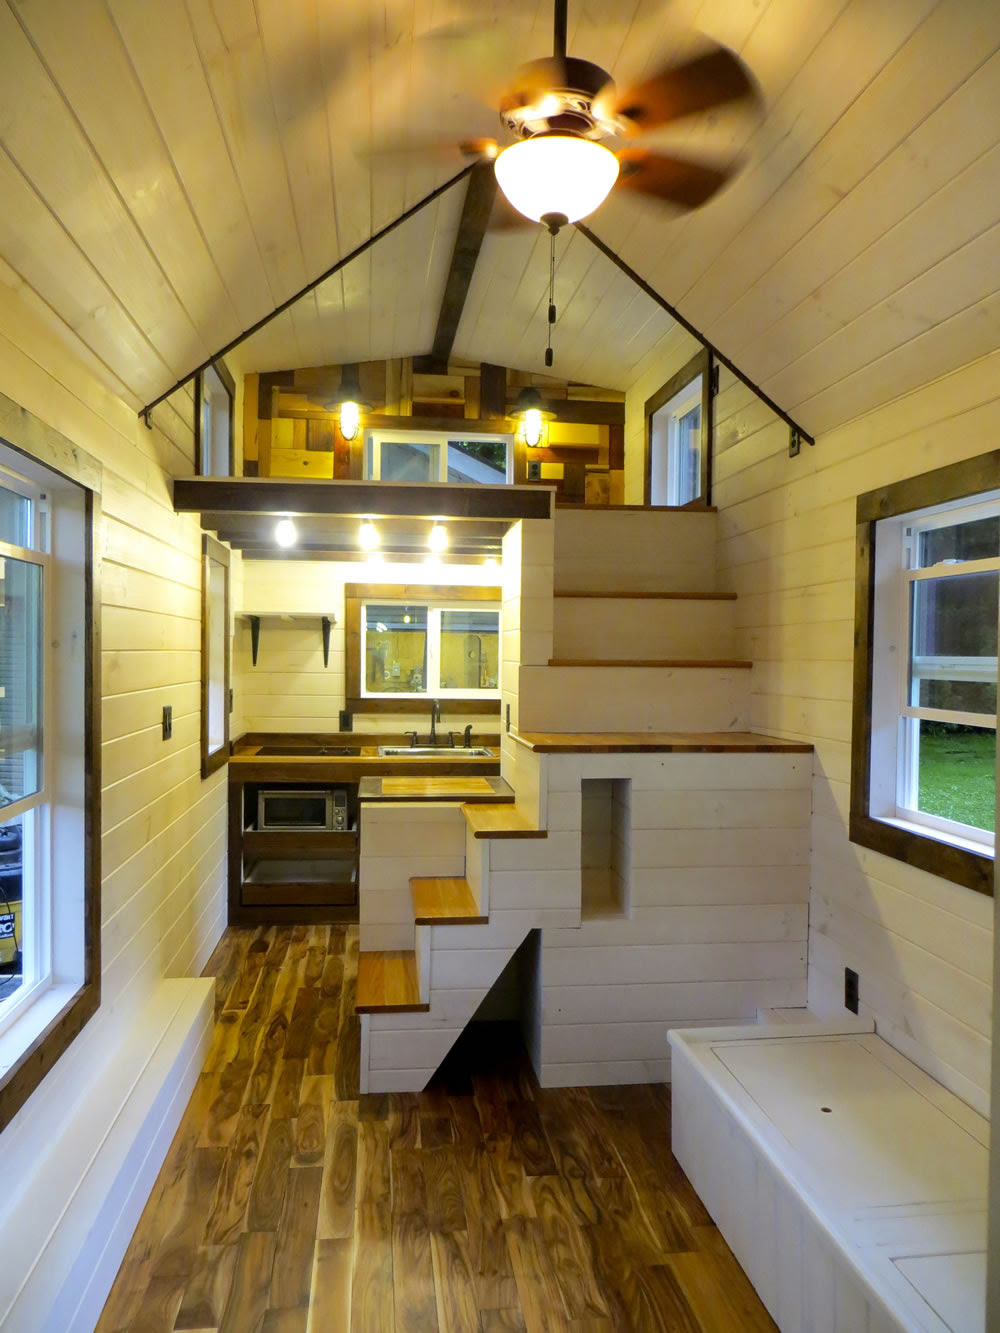 A Tiny Trailer Home Like No Other – Adorable Home